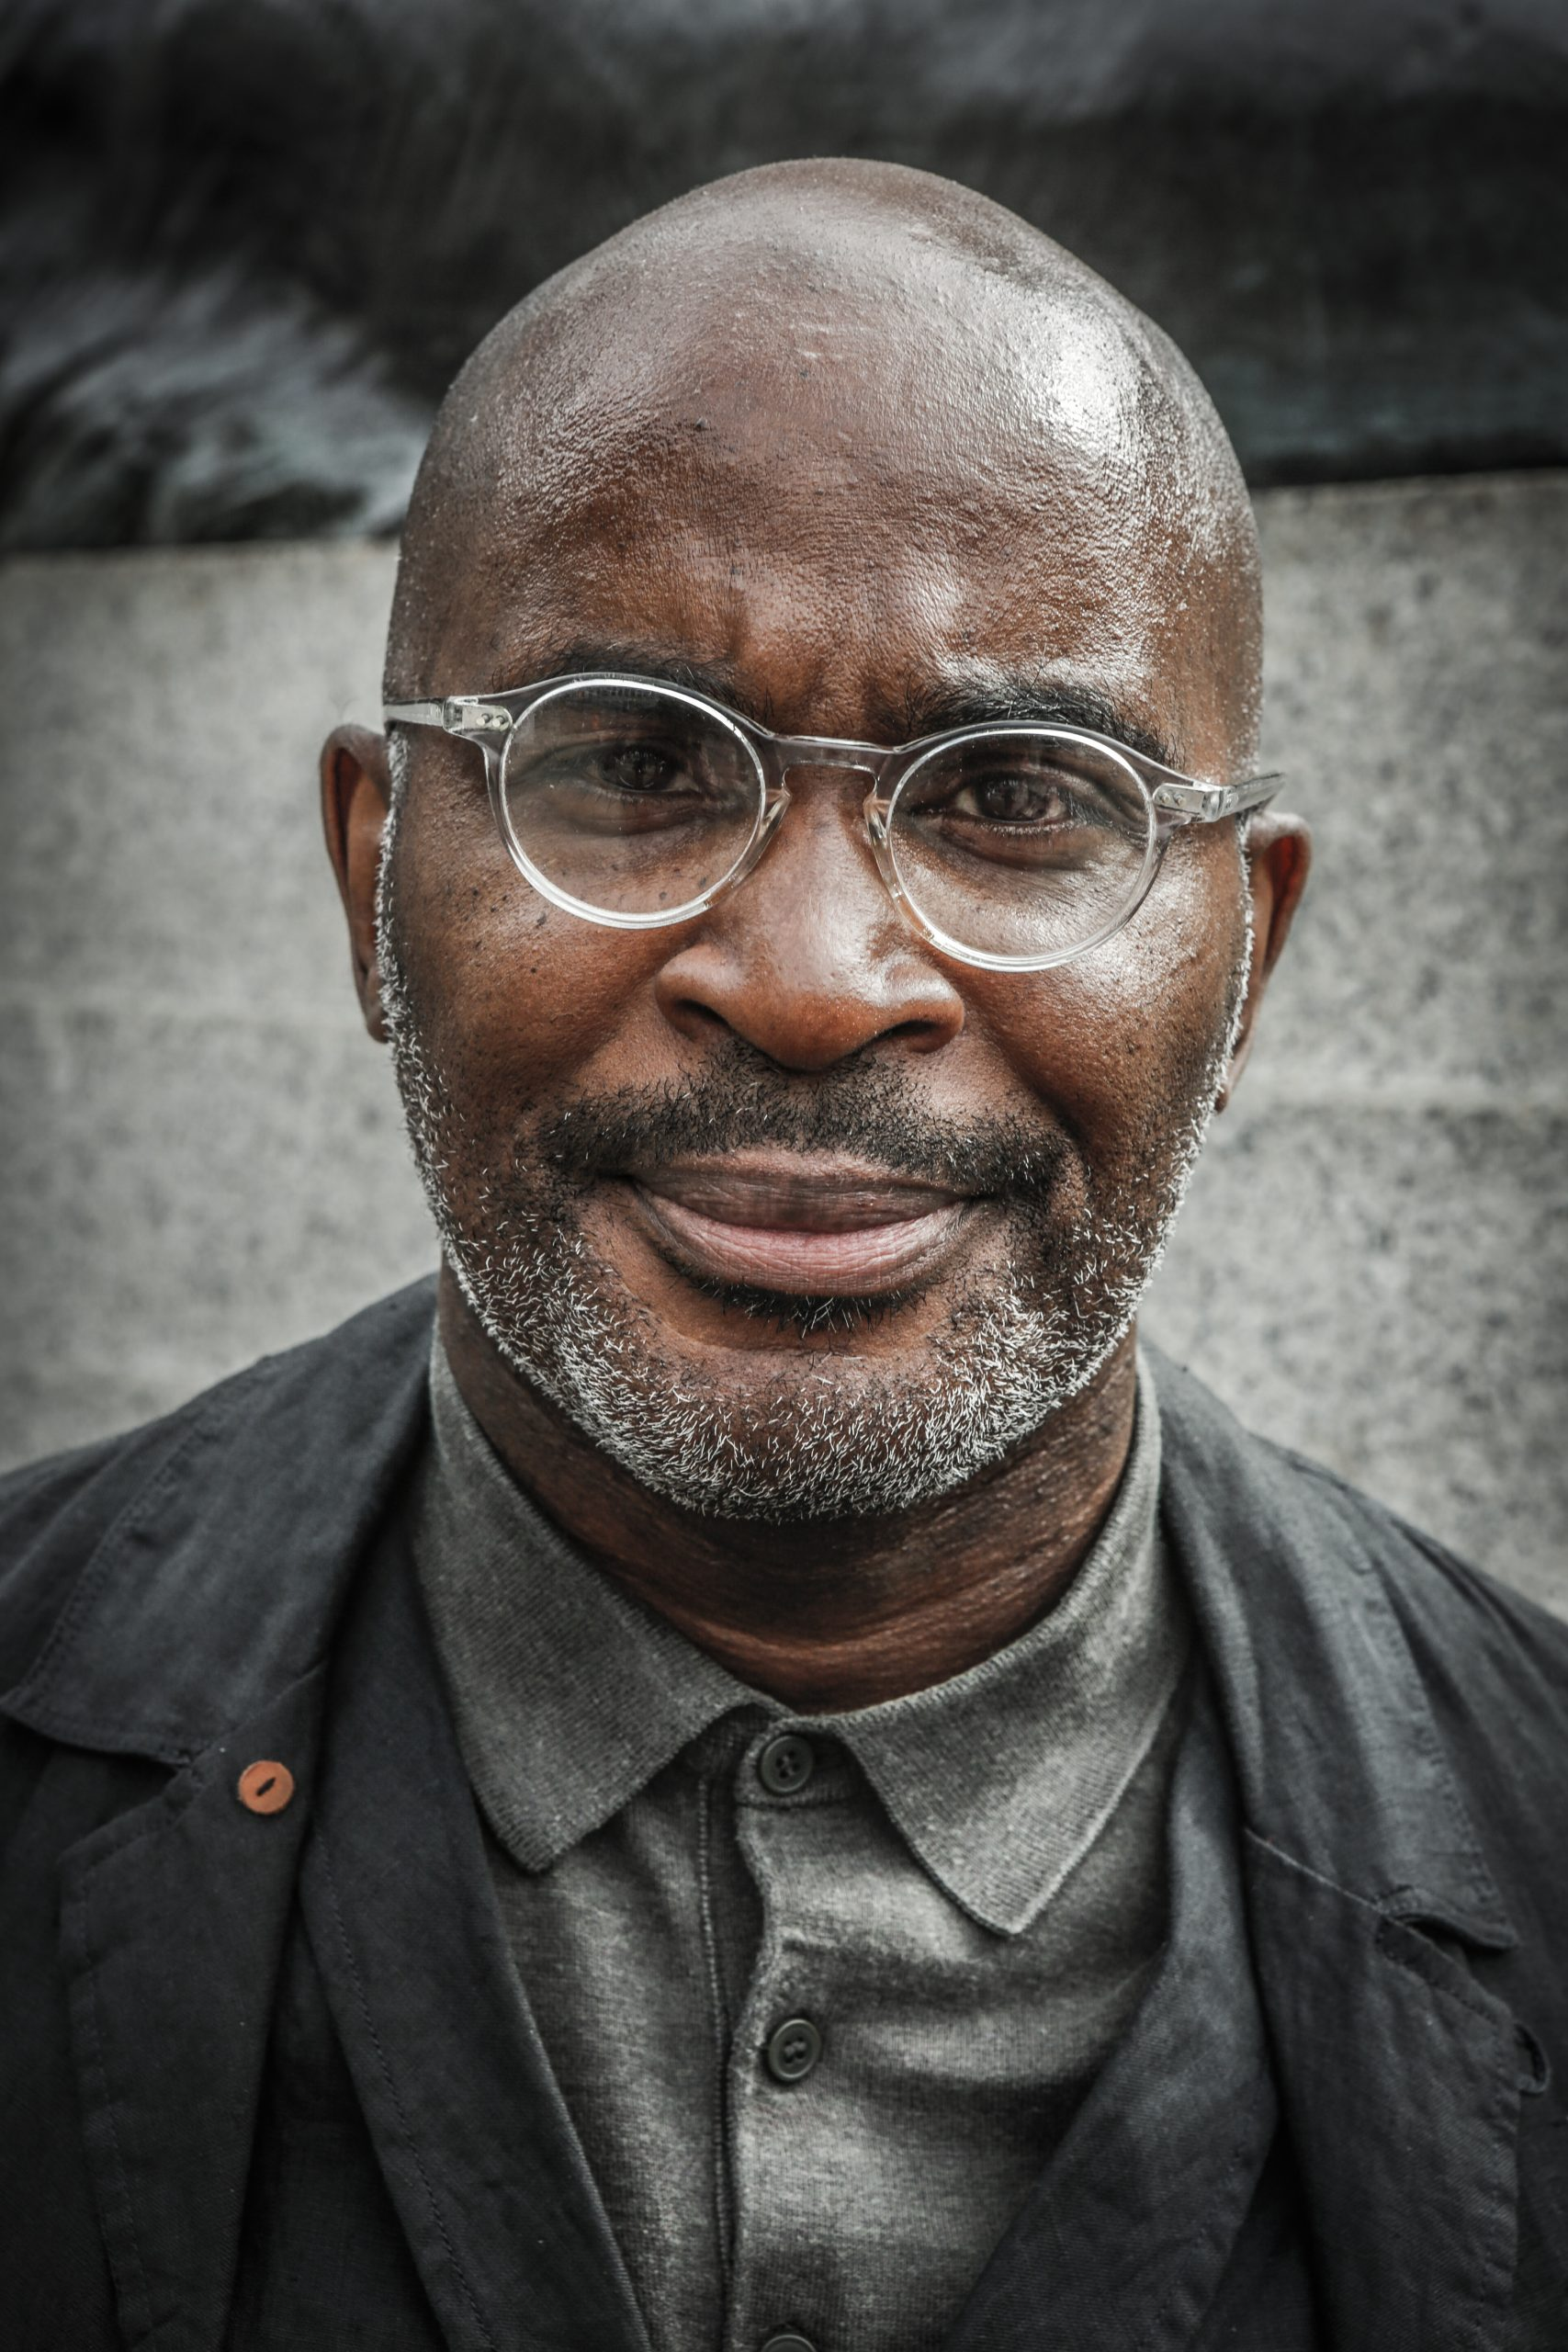 Prof. Robert Beckford - Image by Paul Bankole Iwala